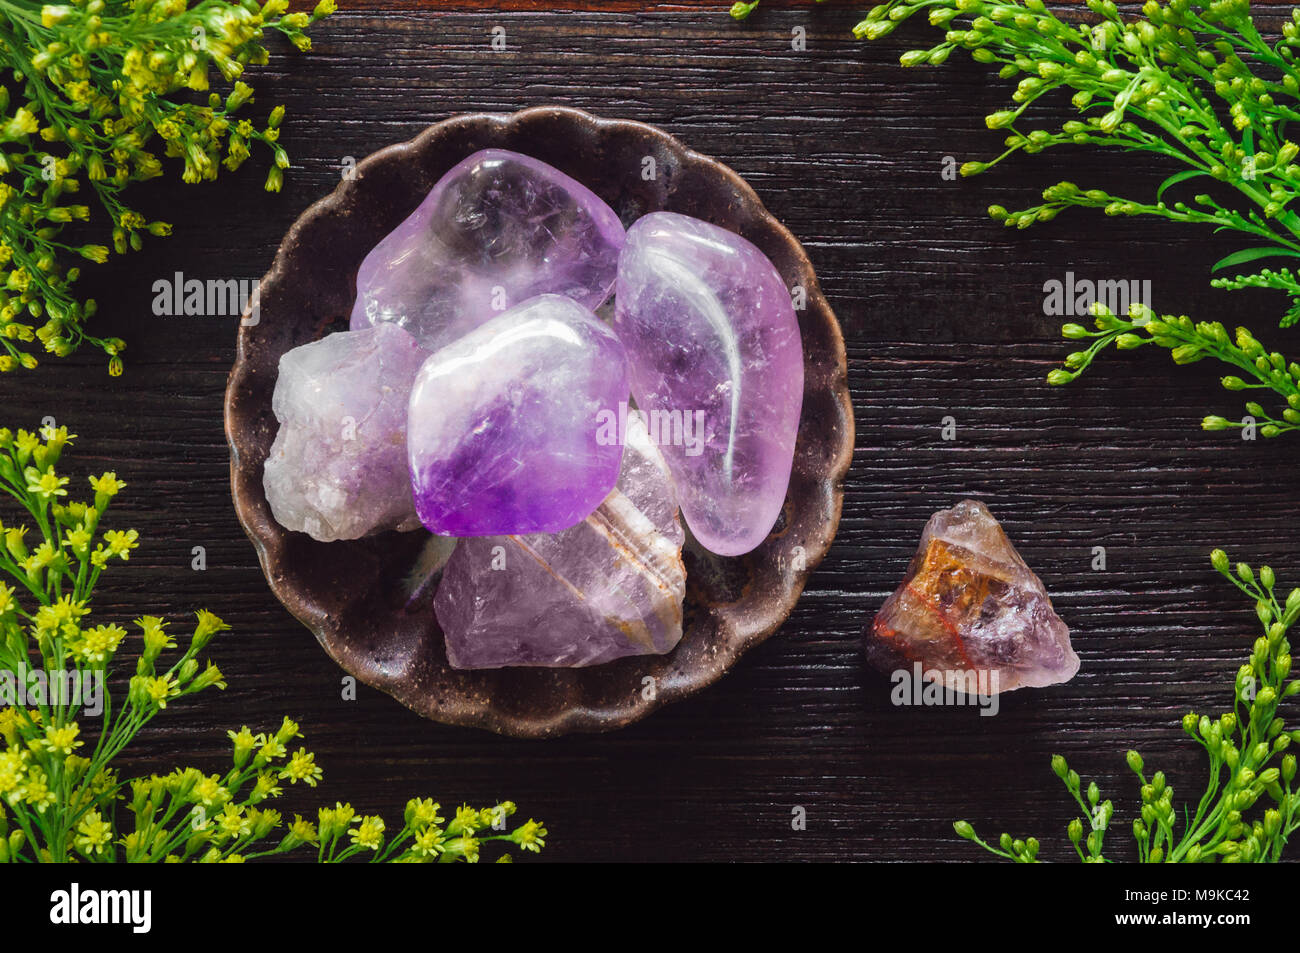 Ceramic Bowl of Amethyst Crystals with Yellow Aster Solidago Flowers - Stock Image